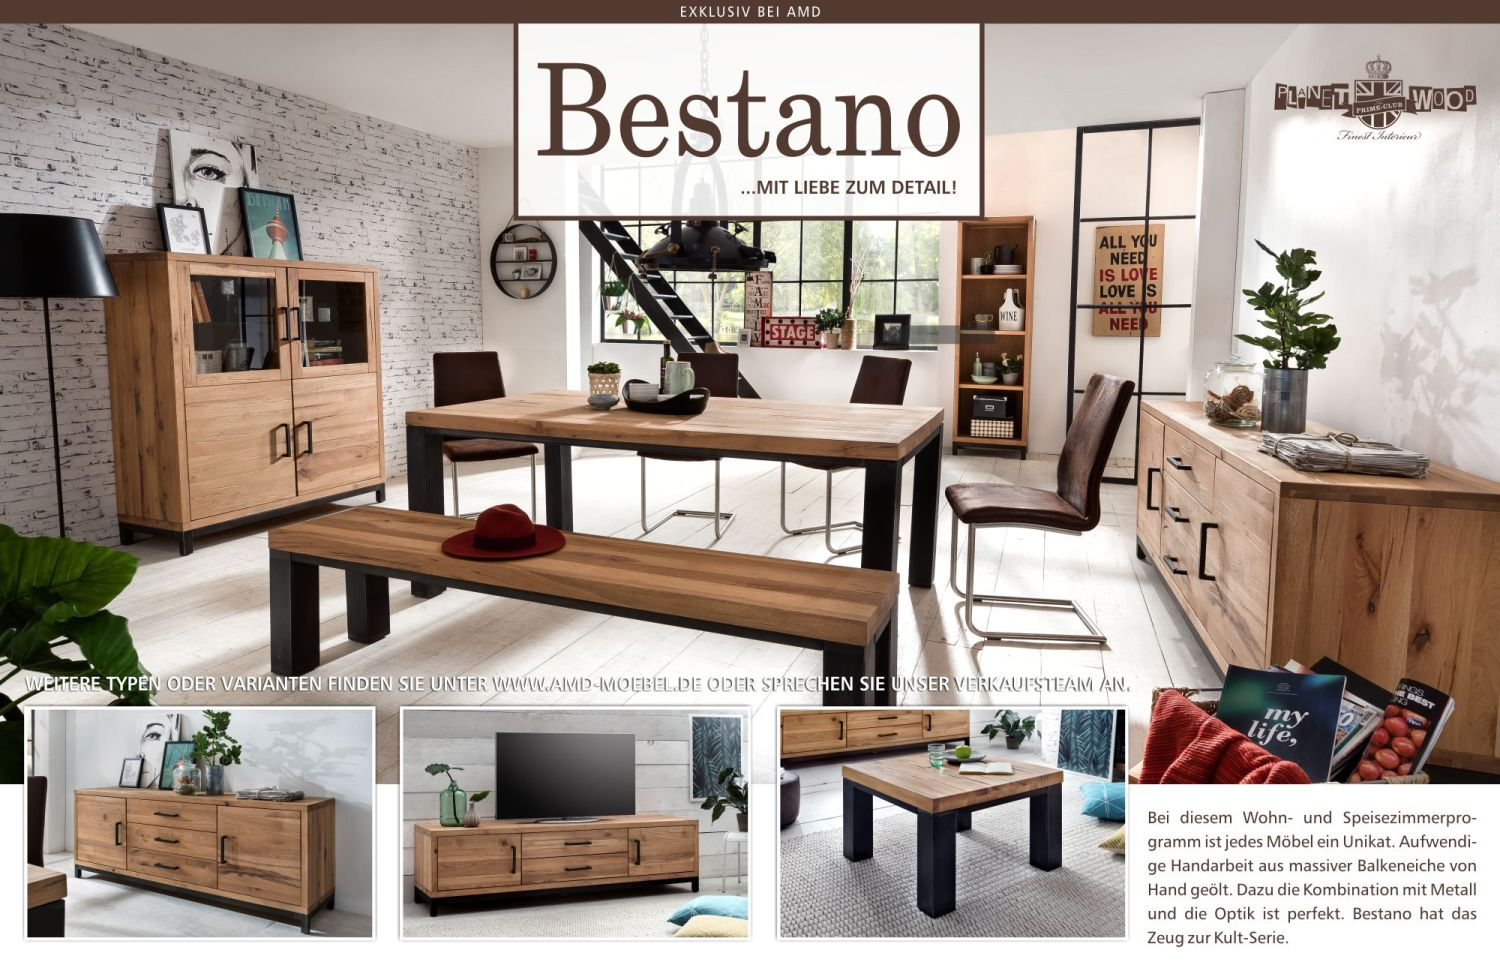 massivholzm bel online shop amd qualit t service. Black Bedroom Furniture Sets. Home Design Ideas